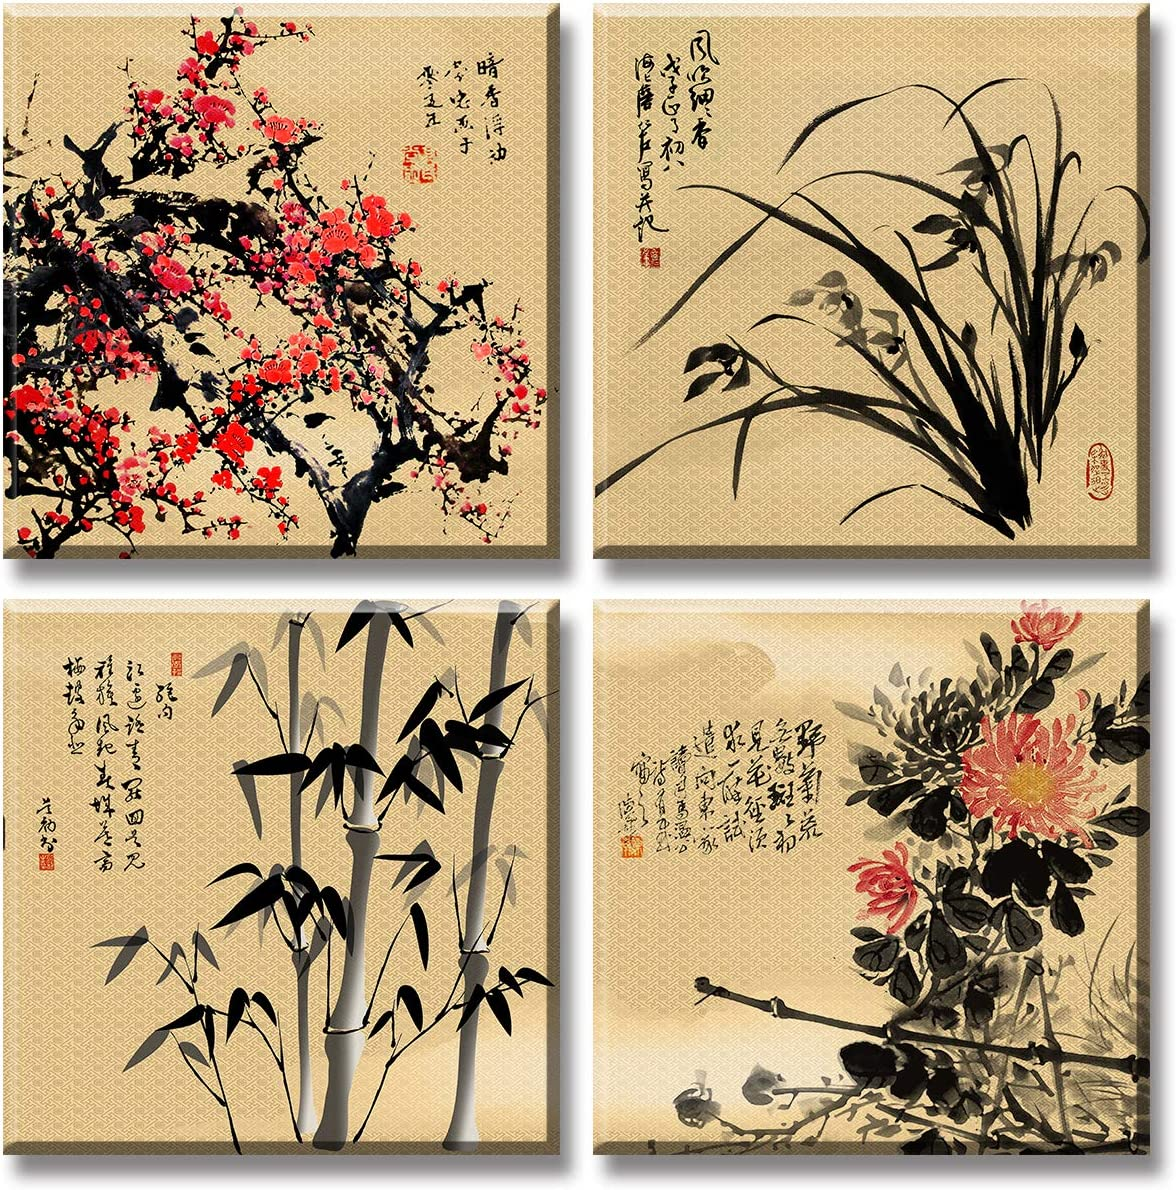 Chinese Ink Painting Canvas Wall Art Plum Blossoms Orchid Bamboo Chrysanthemum Calligraphy Tradition Modern Culture Decor Pictures New Chinese Style Home Decoration Stretched and Framed Ready to Hang